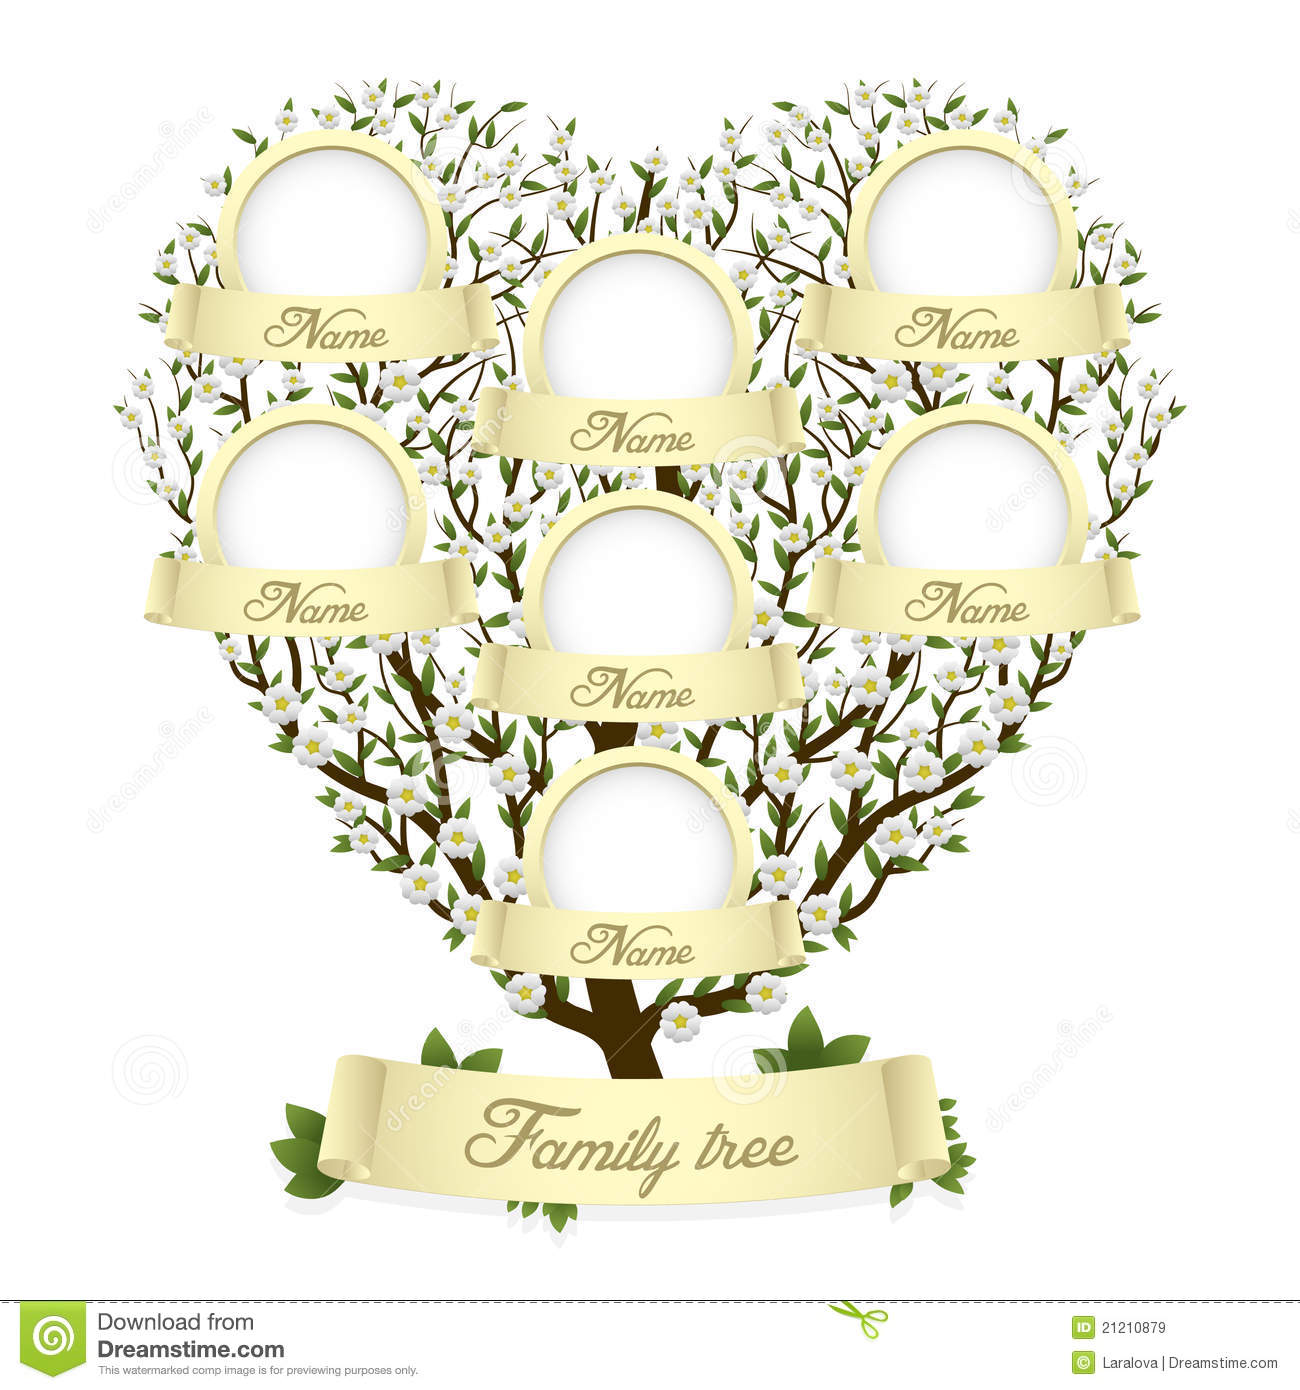 family tree download